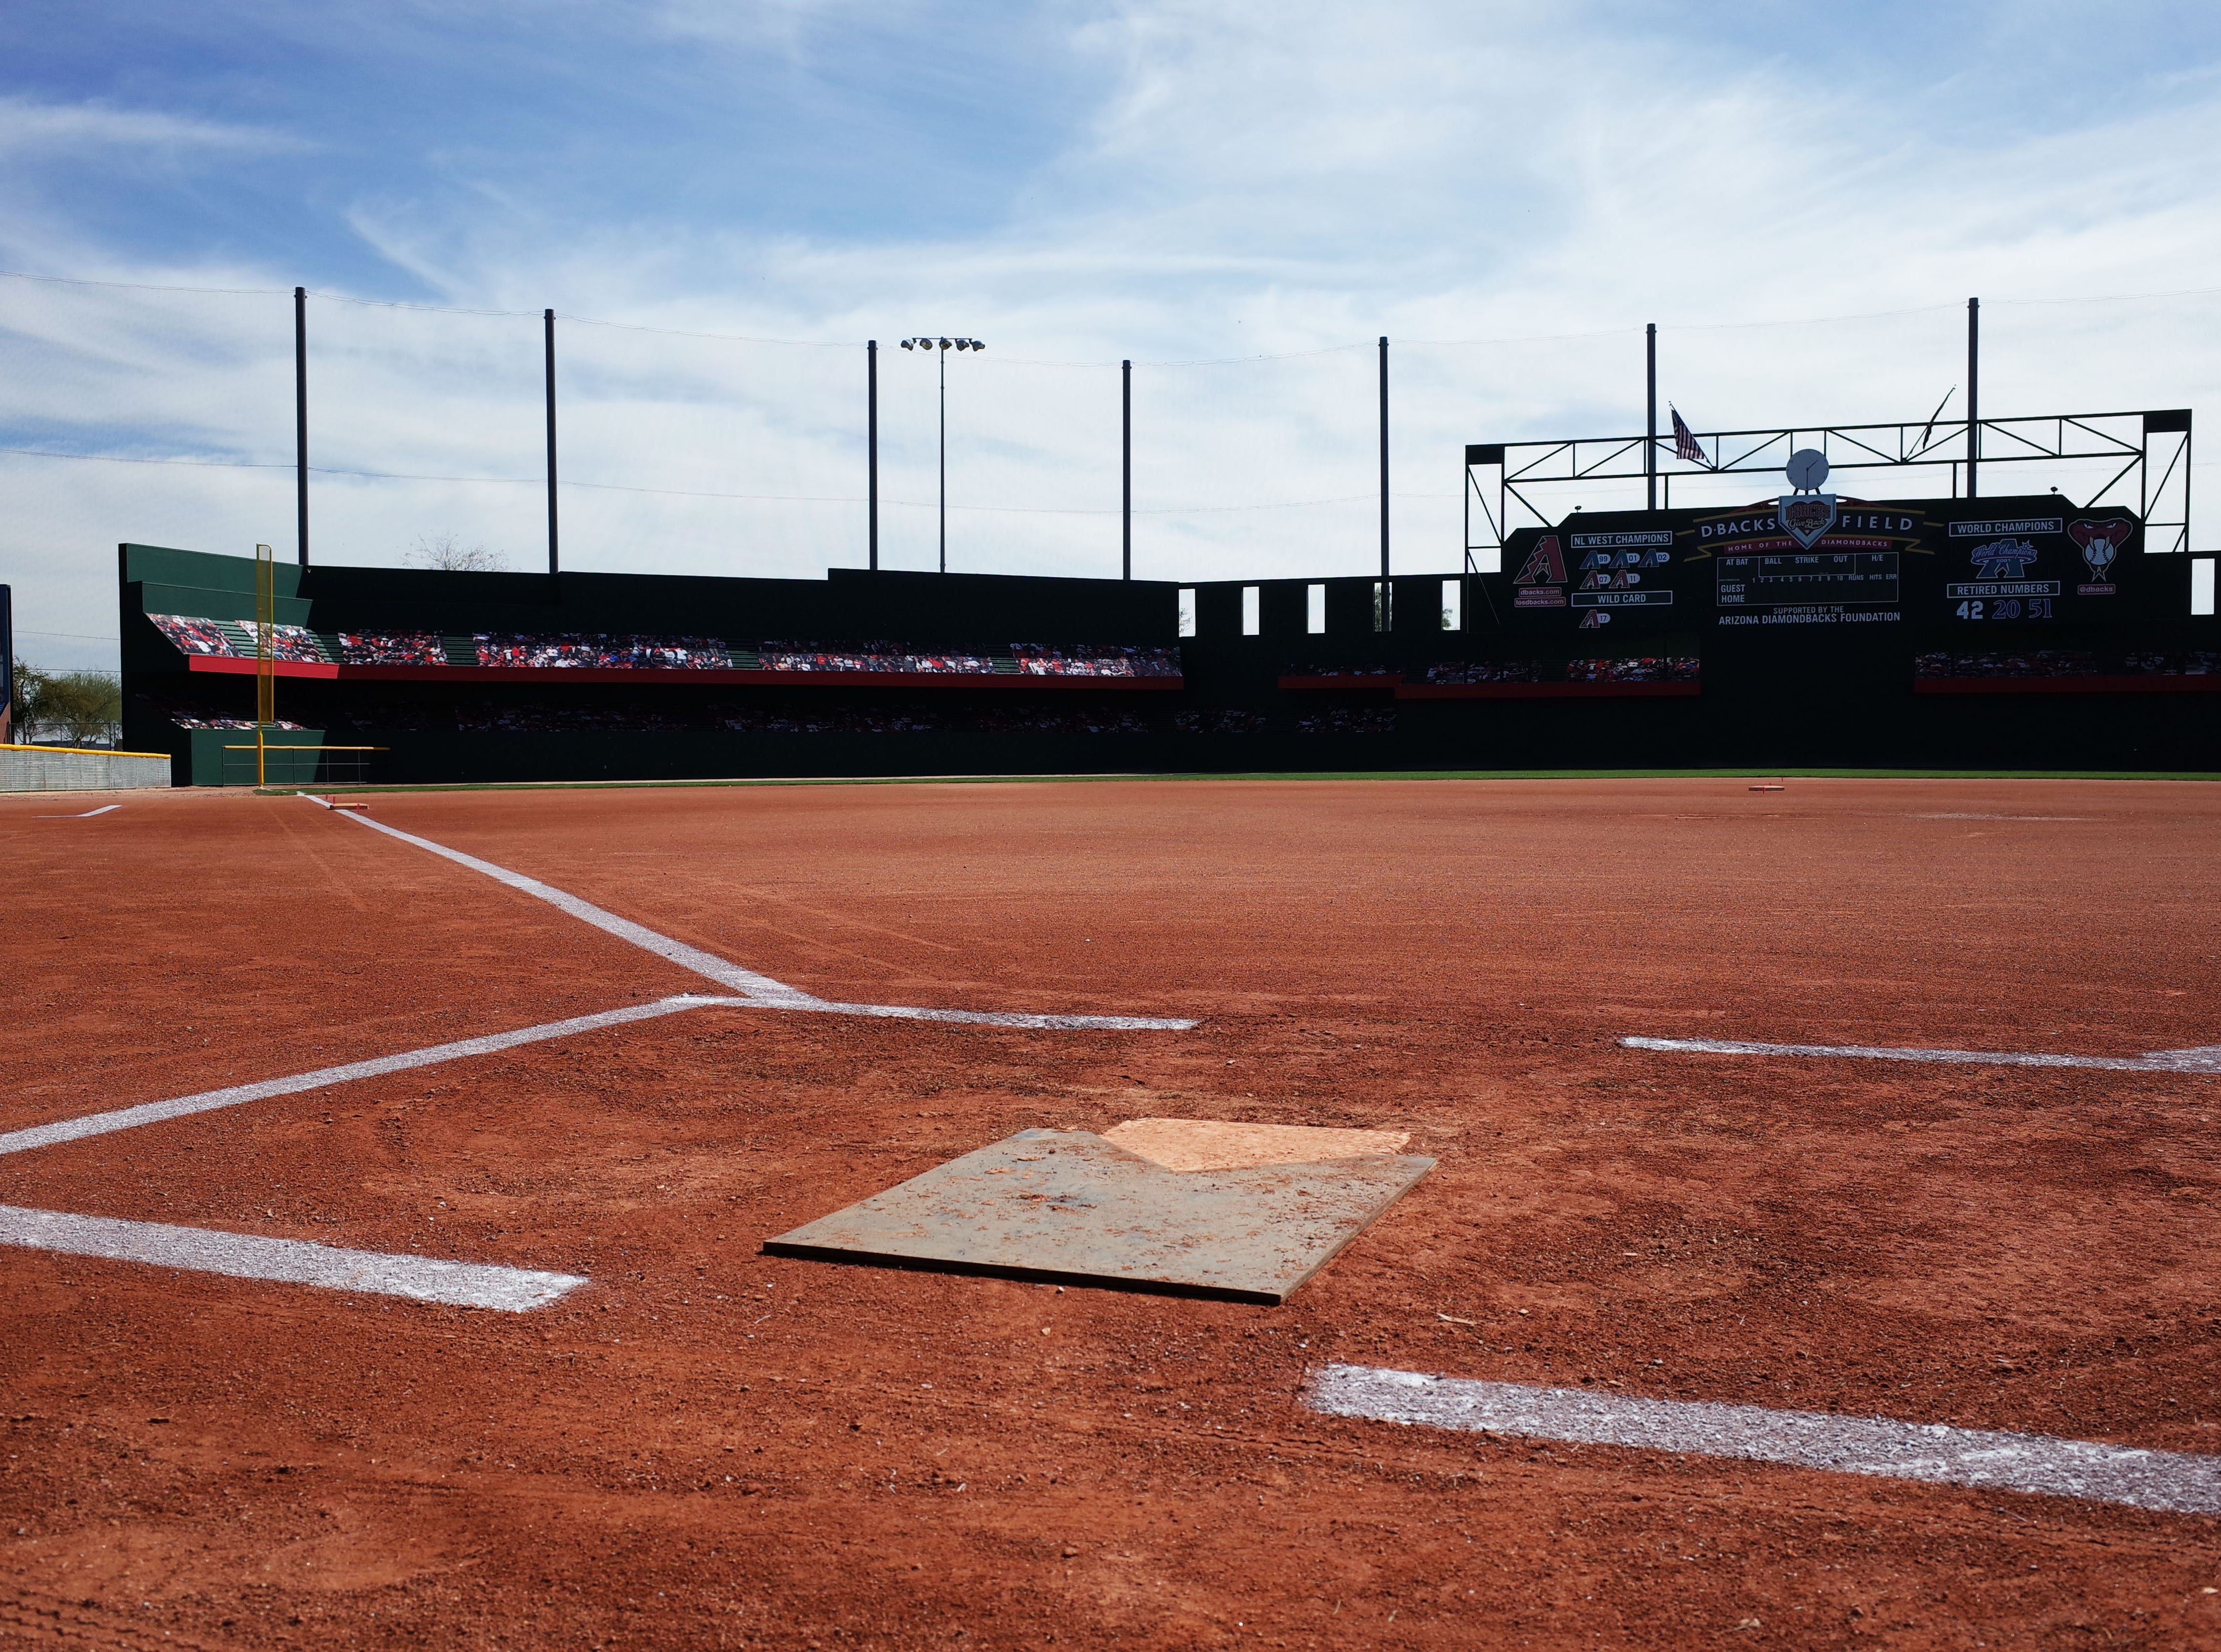 Cactus Yards, nearly Elliot and Power roads in Gilbert, features eight baseball fields that are smaller replicas of Major League ballparks.